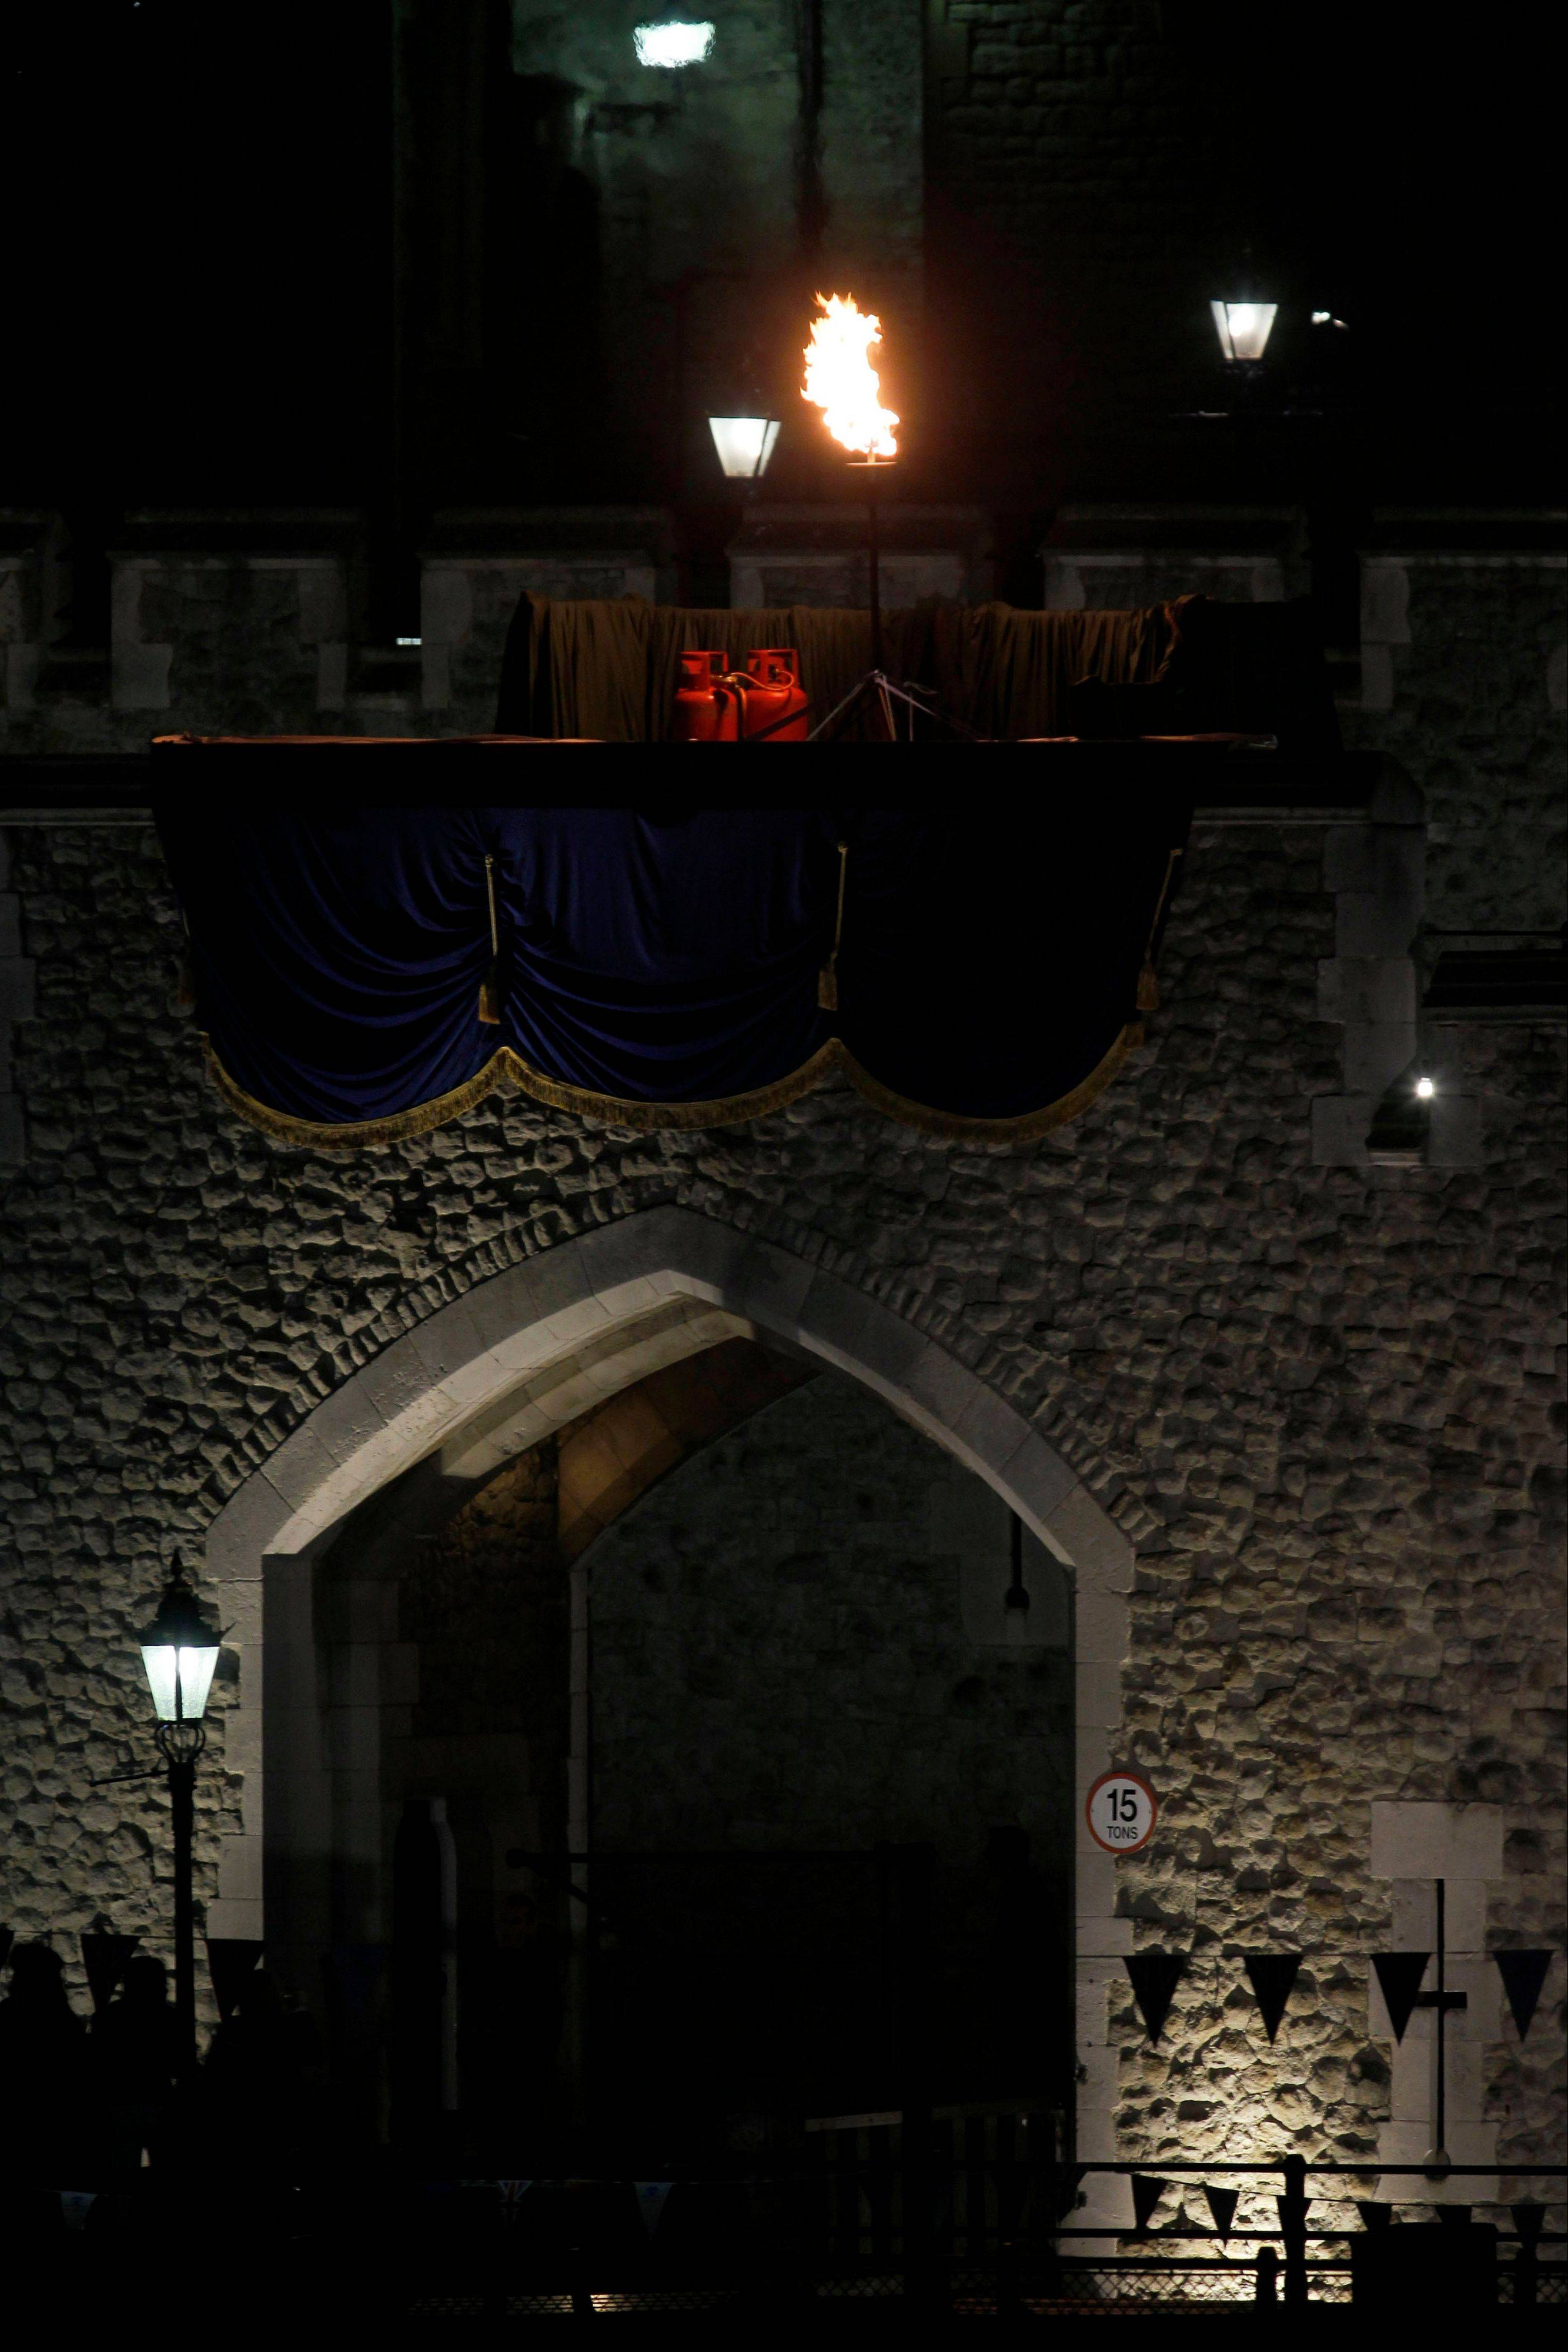 A beacon is lit on the battlements of the Tower of London as part of a four-day Diamond Jubilee celebration to mark the 60th anniversary of Queen Elizabeth II accession to the throne, London, Monday, June 4, 2012.